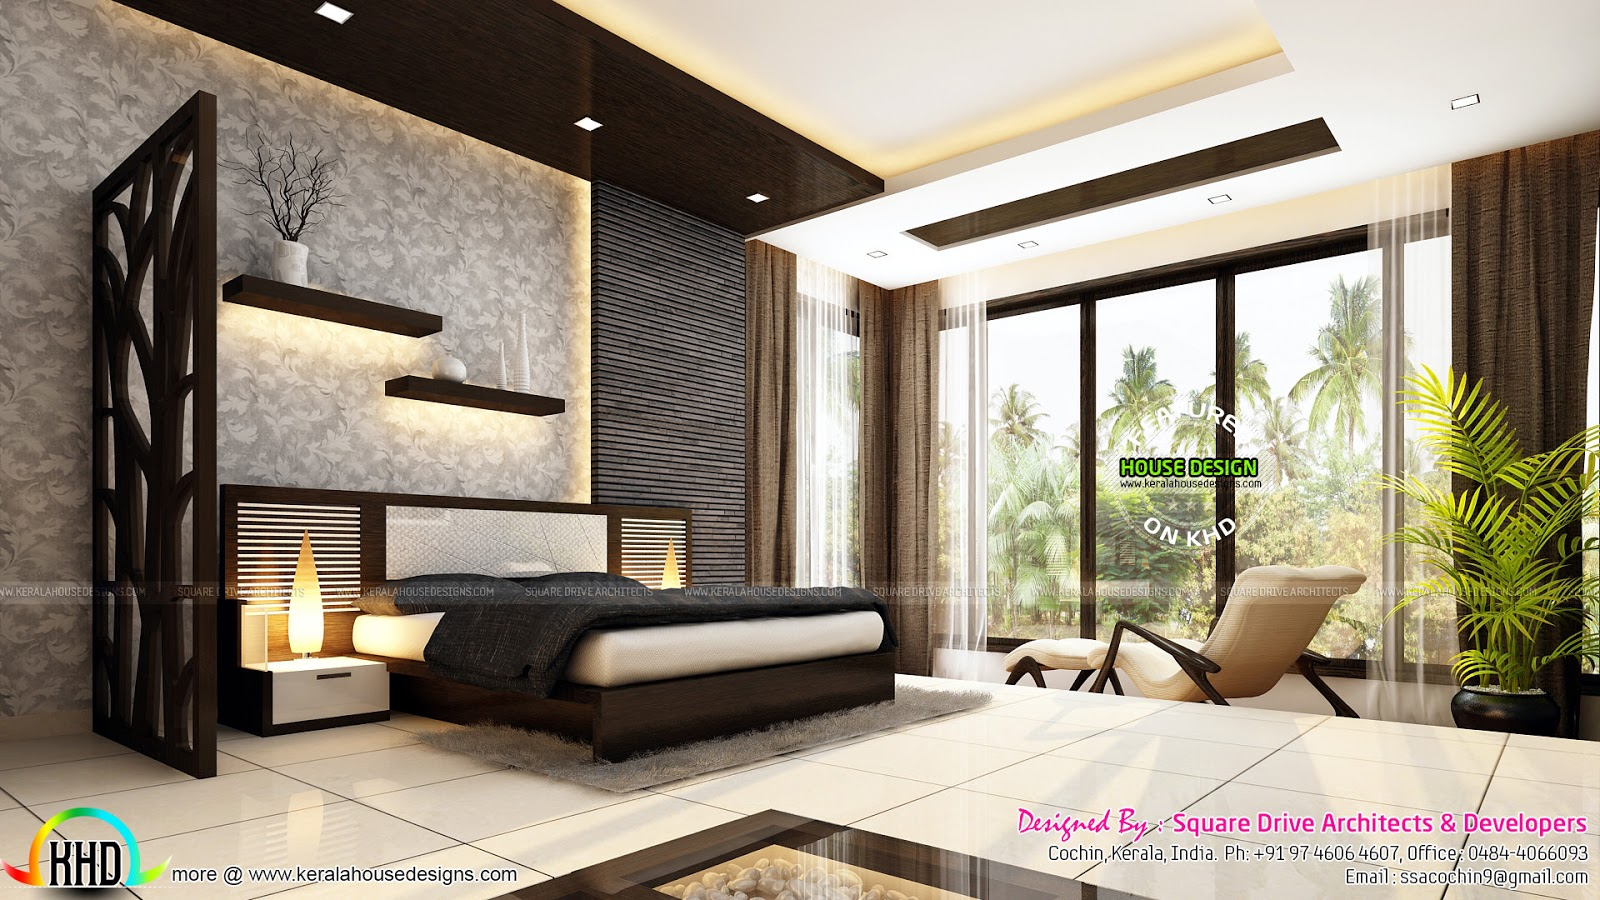 Very beautiful modern interior designs kerala home for House interior design bedroom